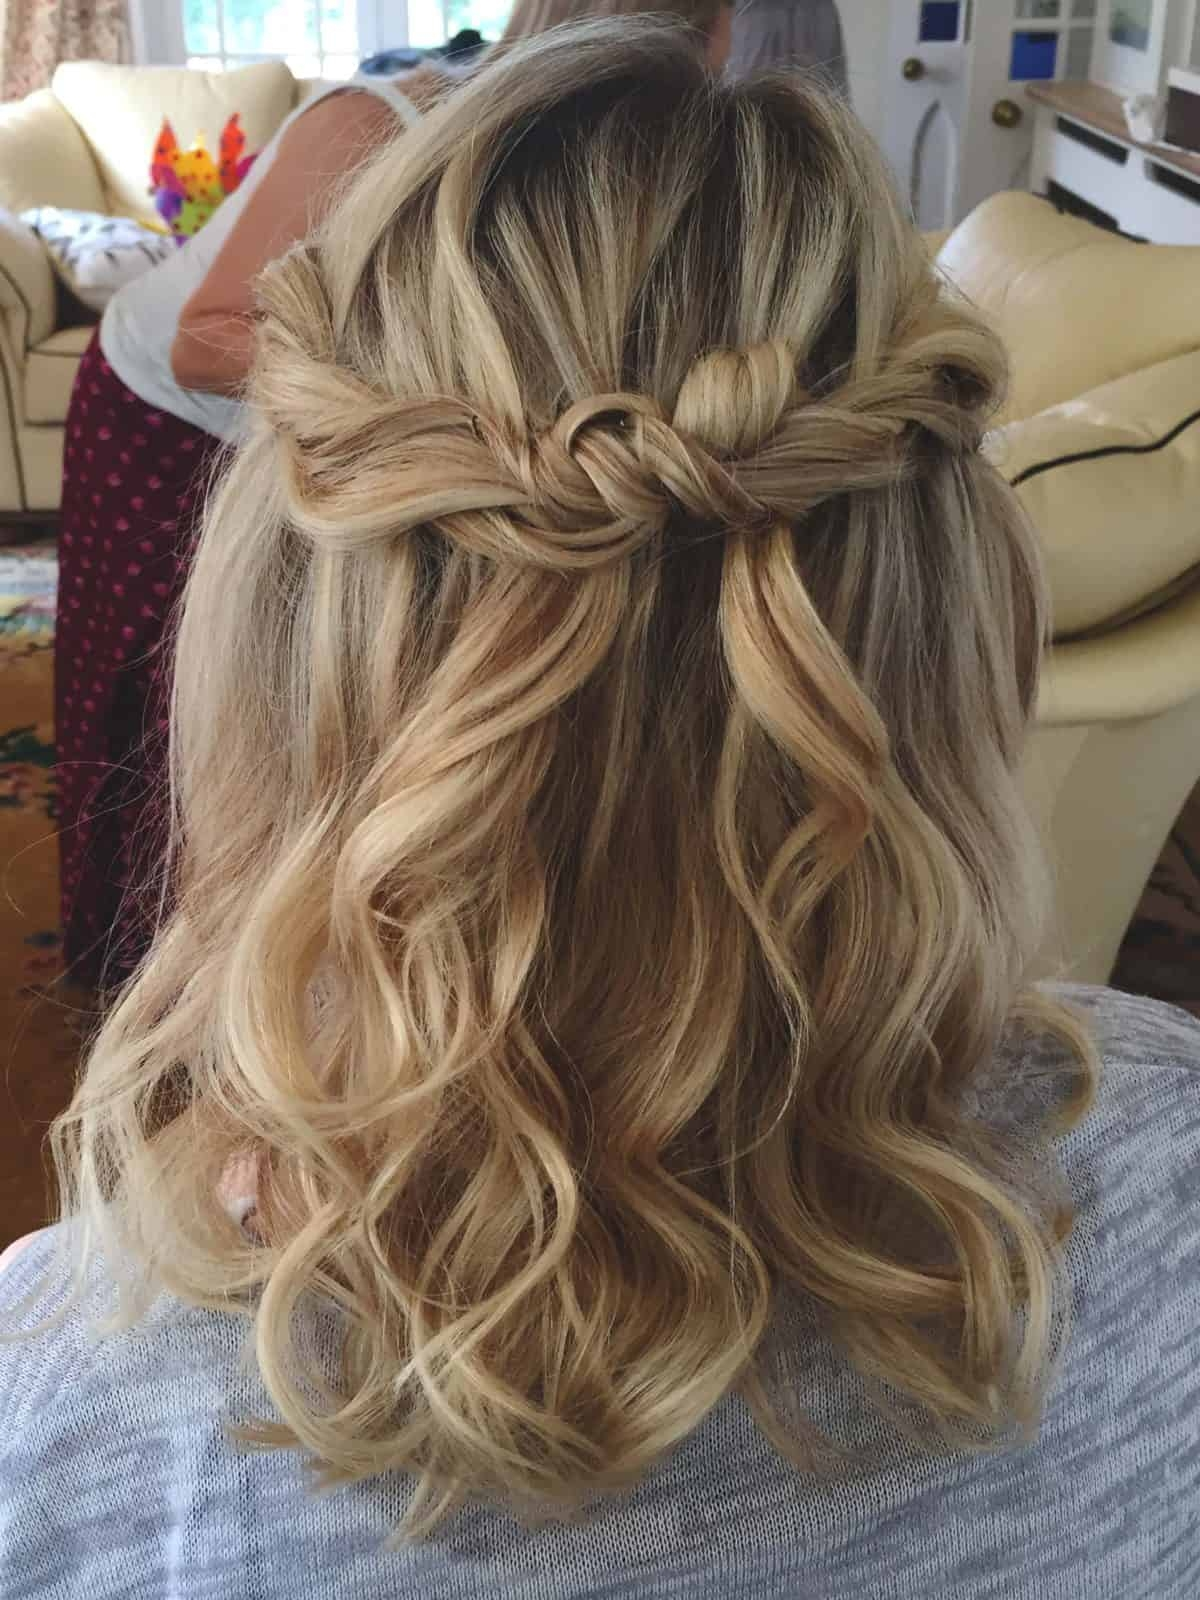 twisted half up do by wedding hairstylist Becky